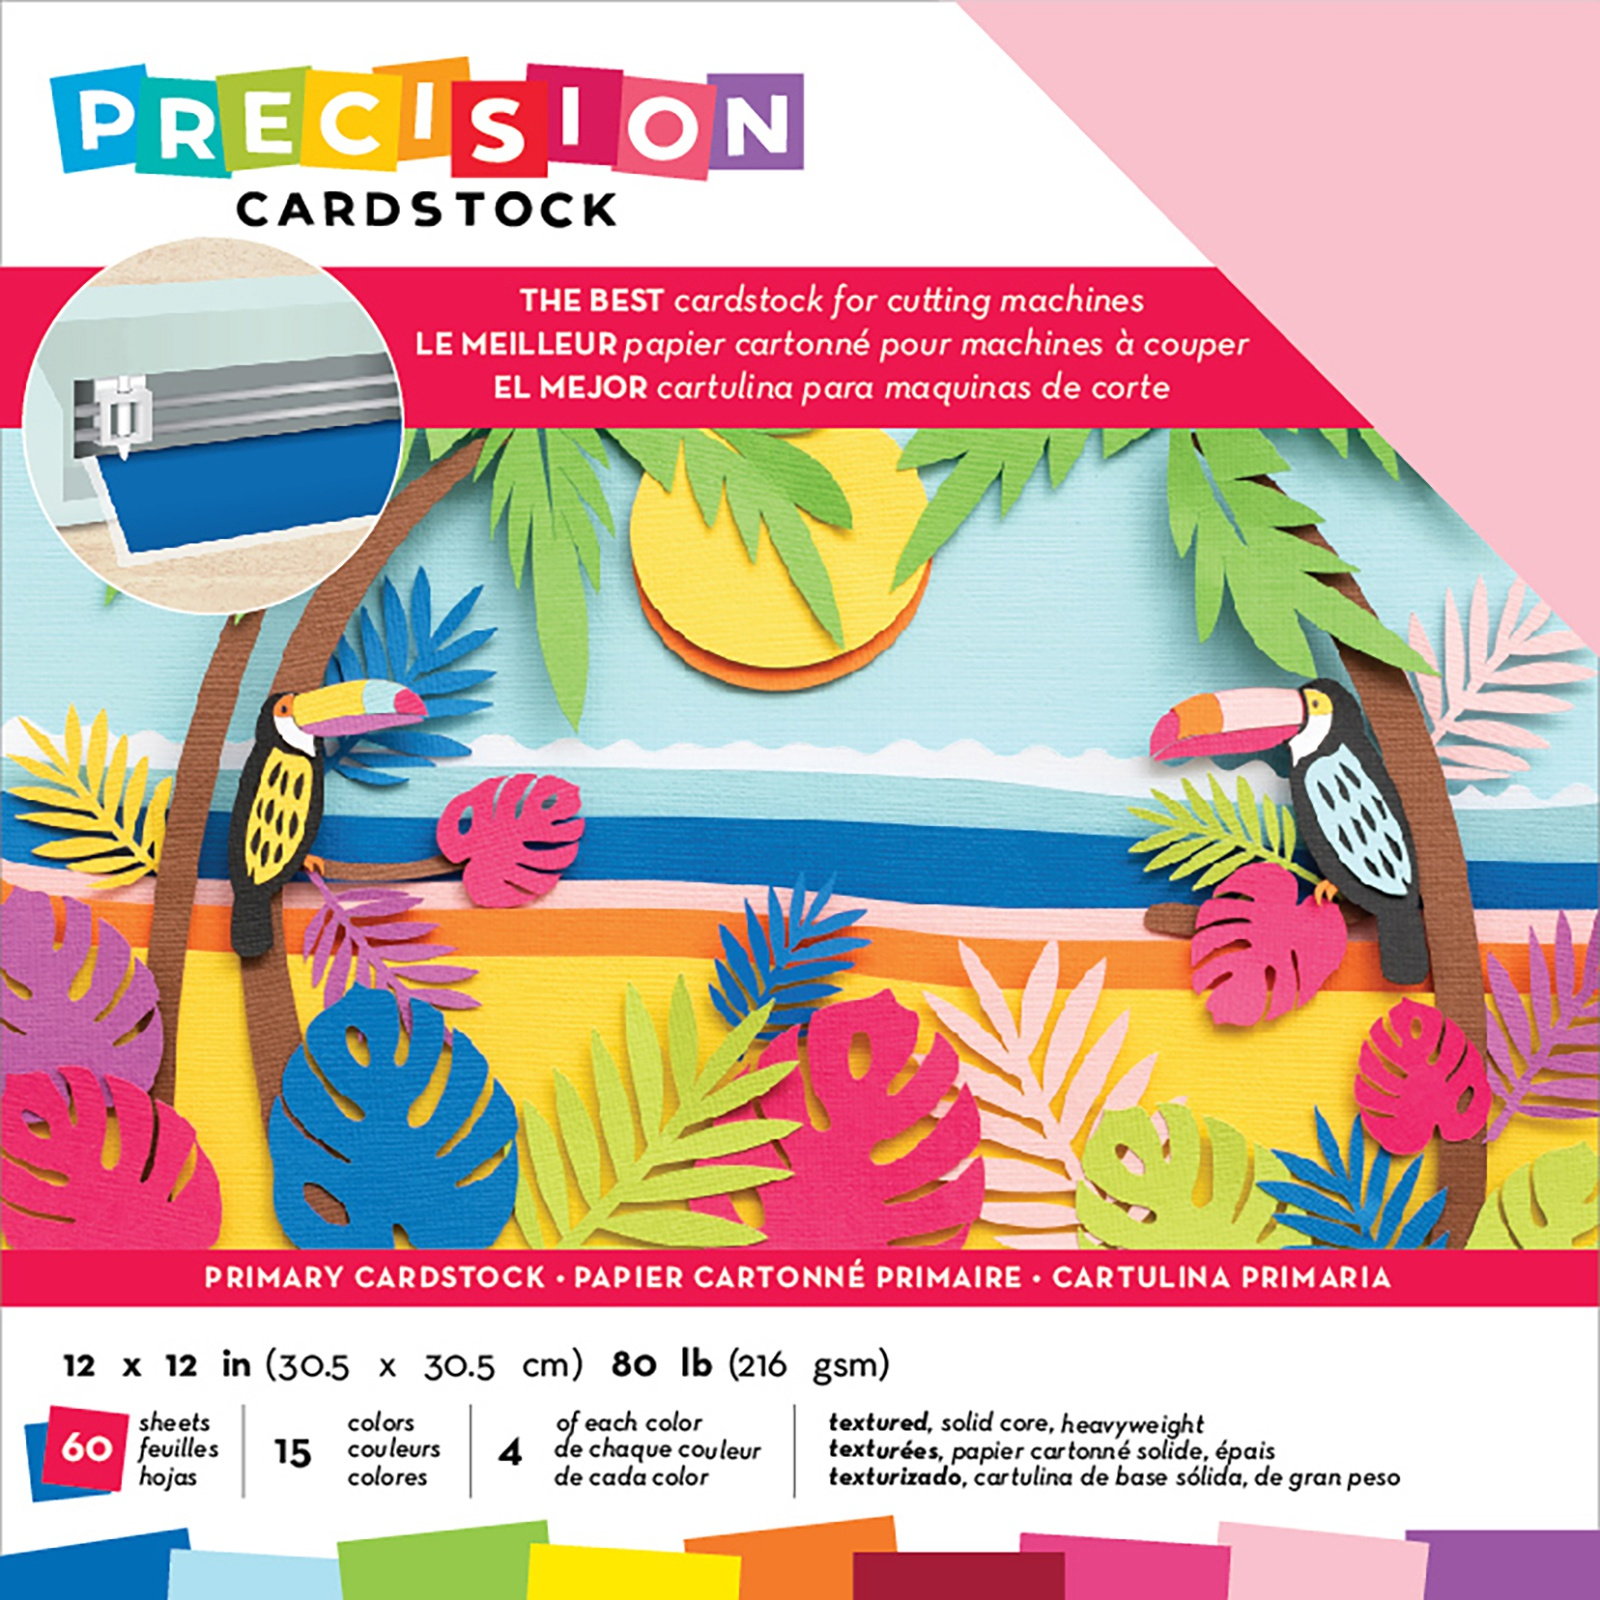 AC Precision Cardstock - 12x12 Variety Pack, Primary, Textured, 60/pkg